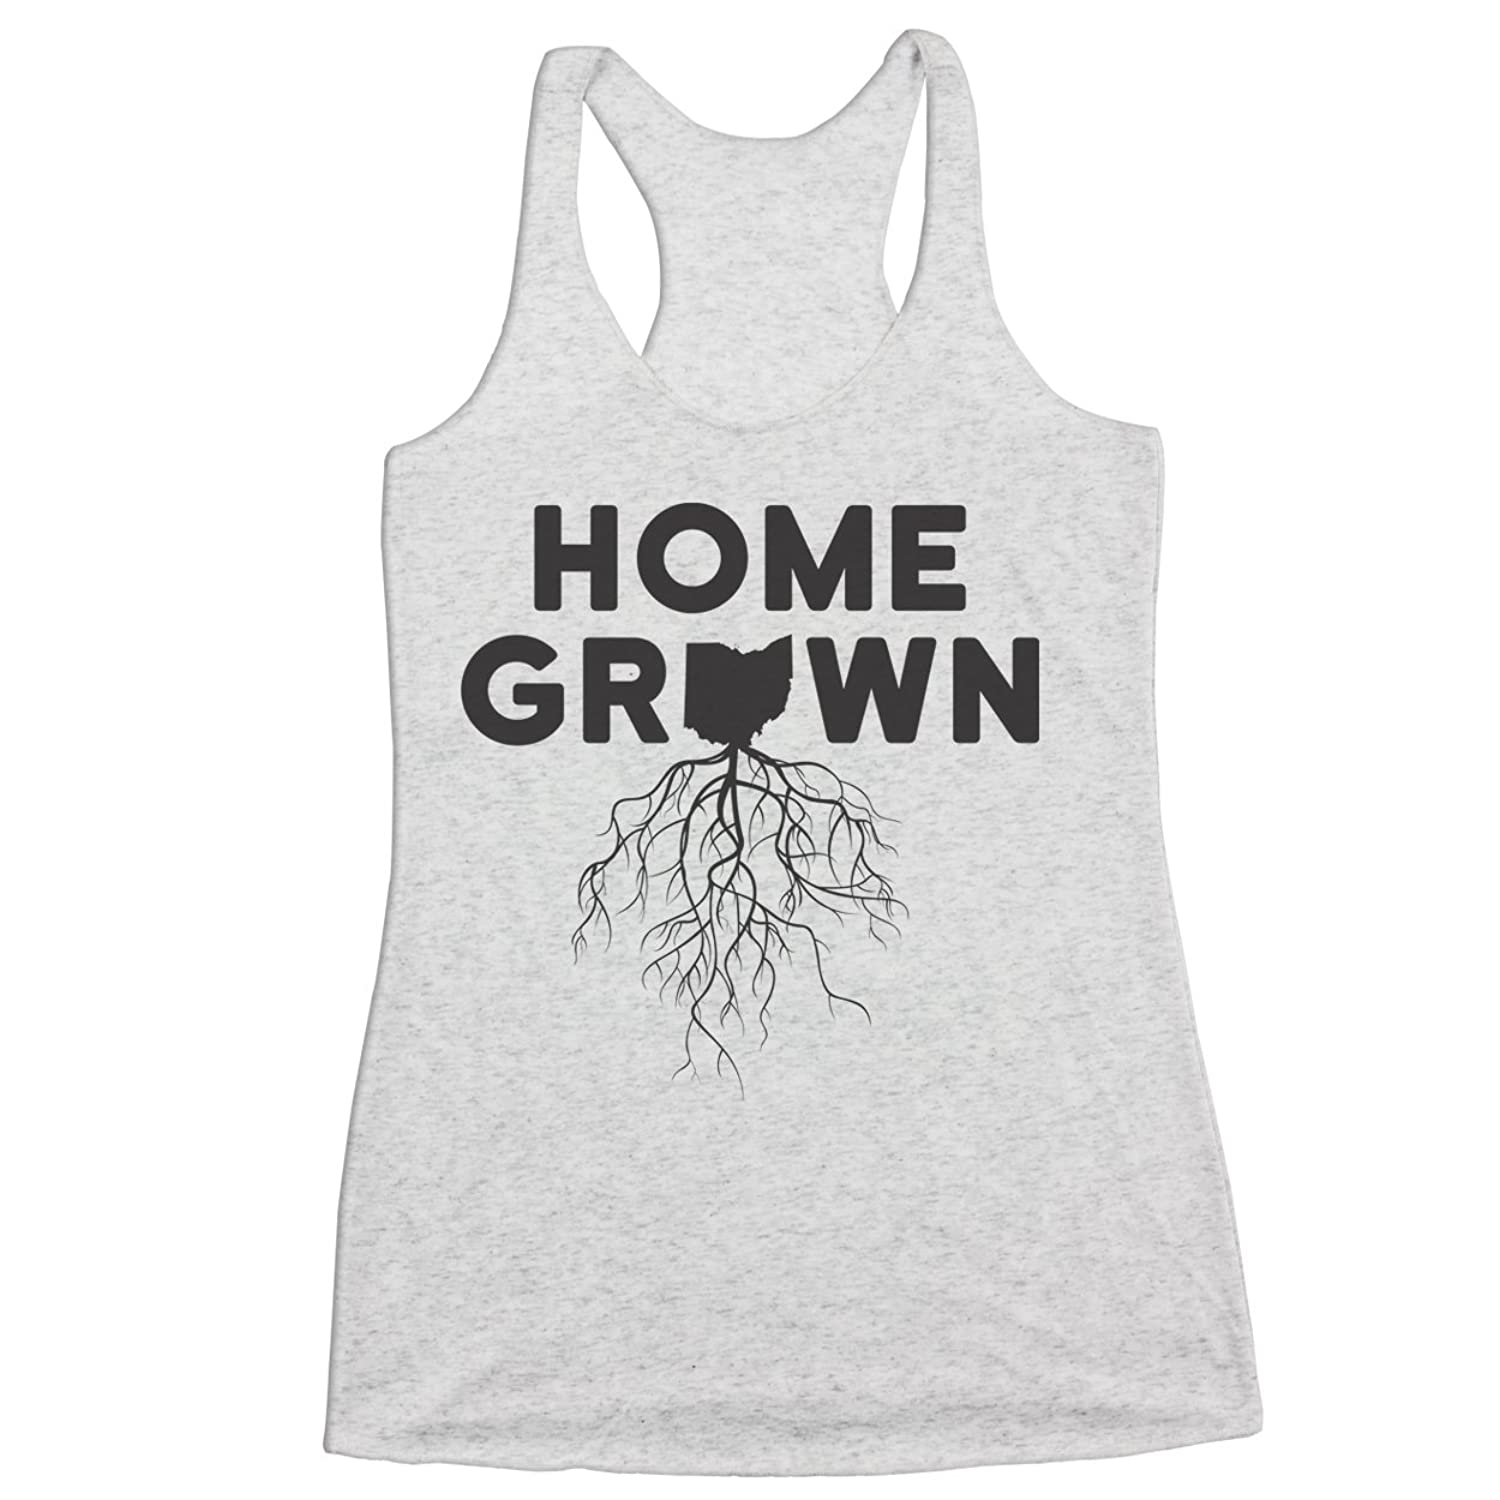 Home Grown Roots Ohio (Black) Racer Back Tri-Blend Tank Top X-Large White